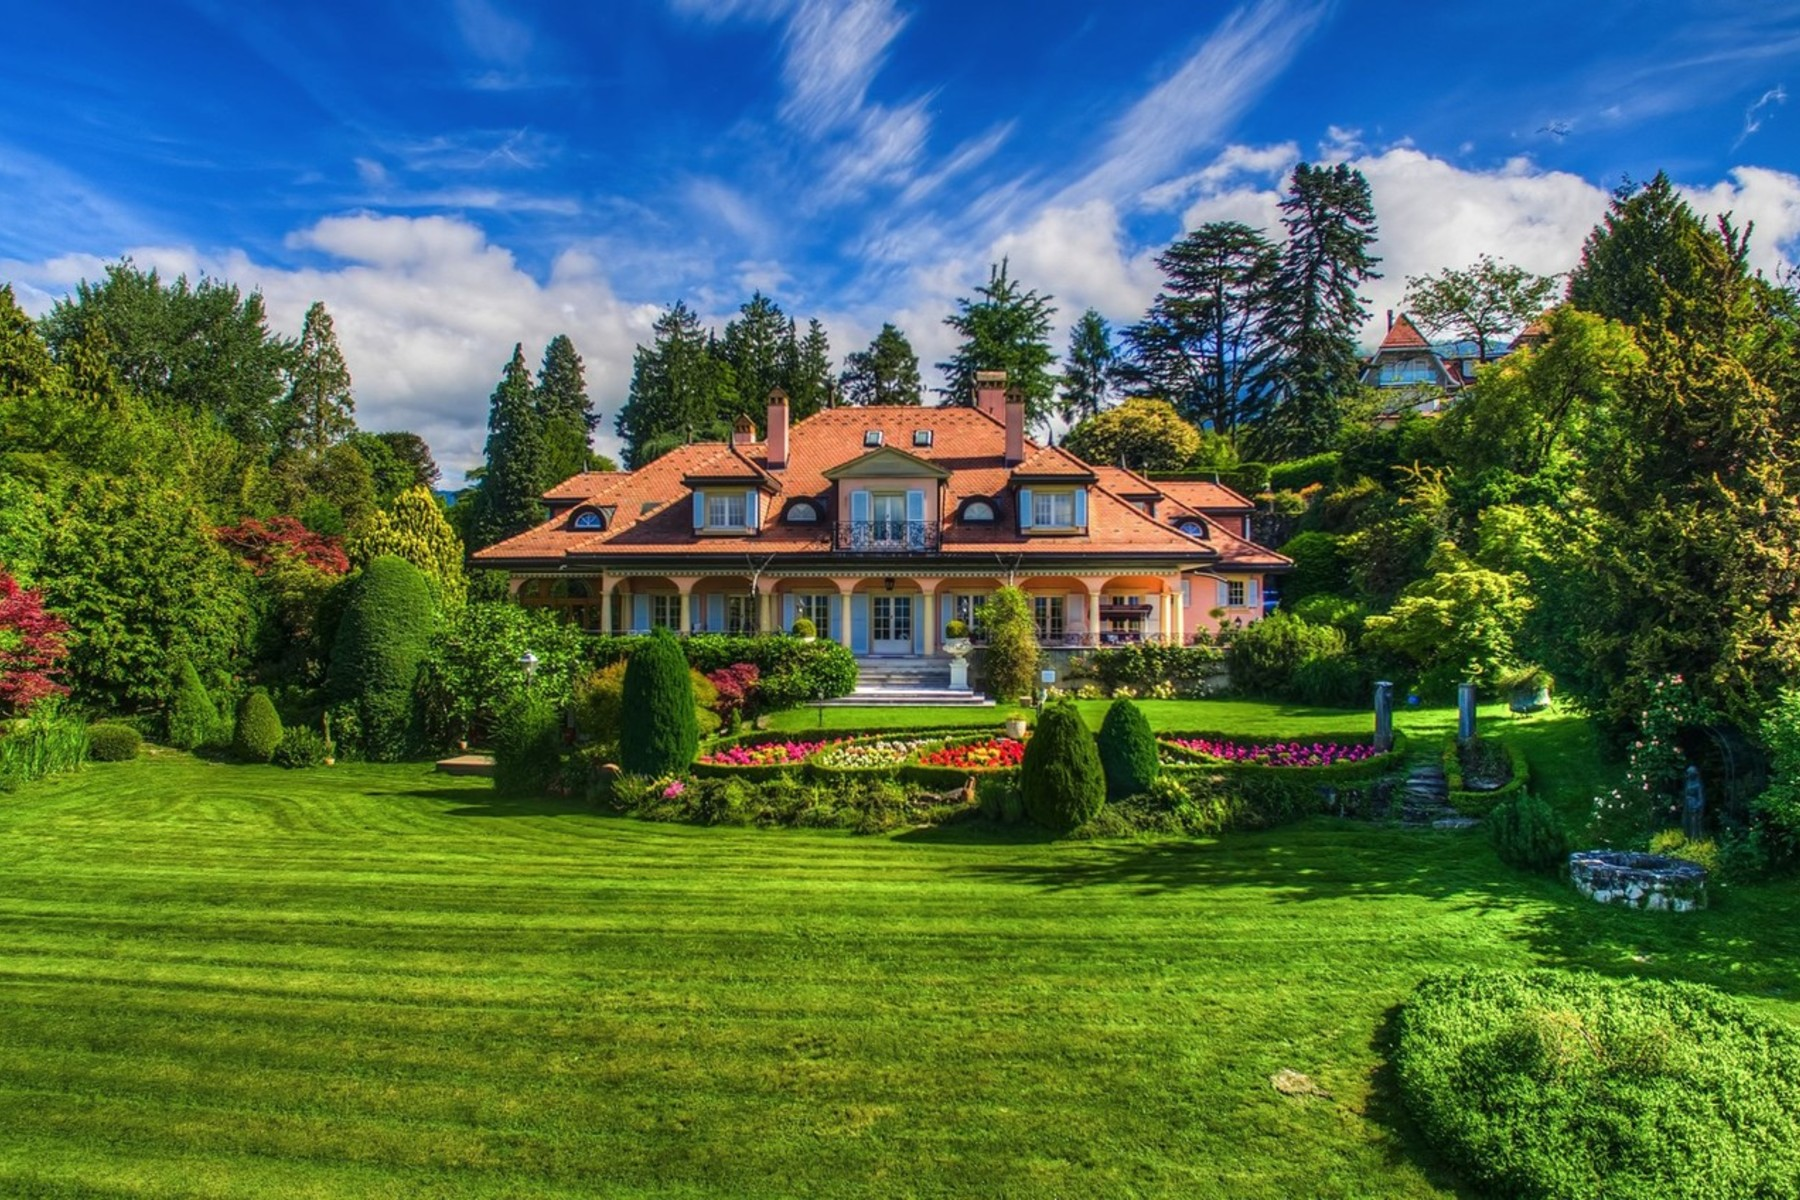 Single Family Home for Sale at Stunning mansion Prestigious, highly sought-after neighbourhood Clarens Montreux, Vaud, 1820 Switzerland